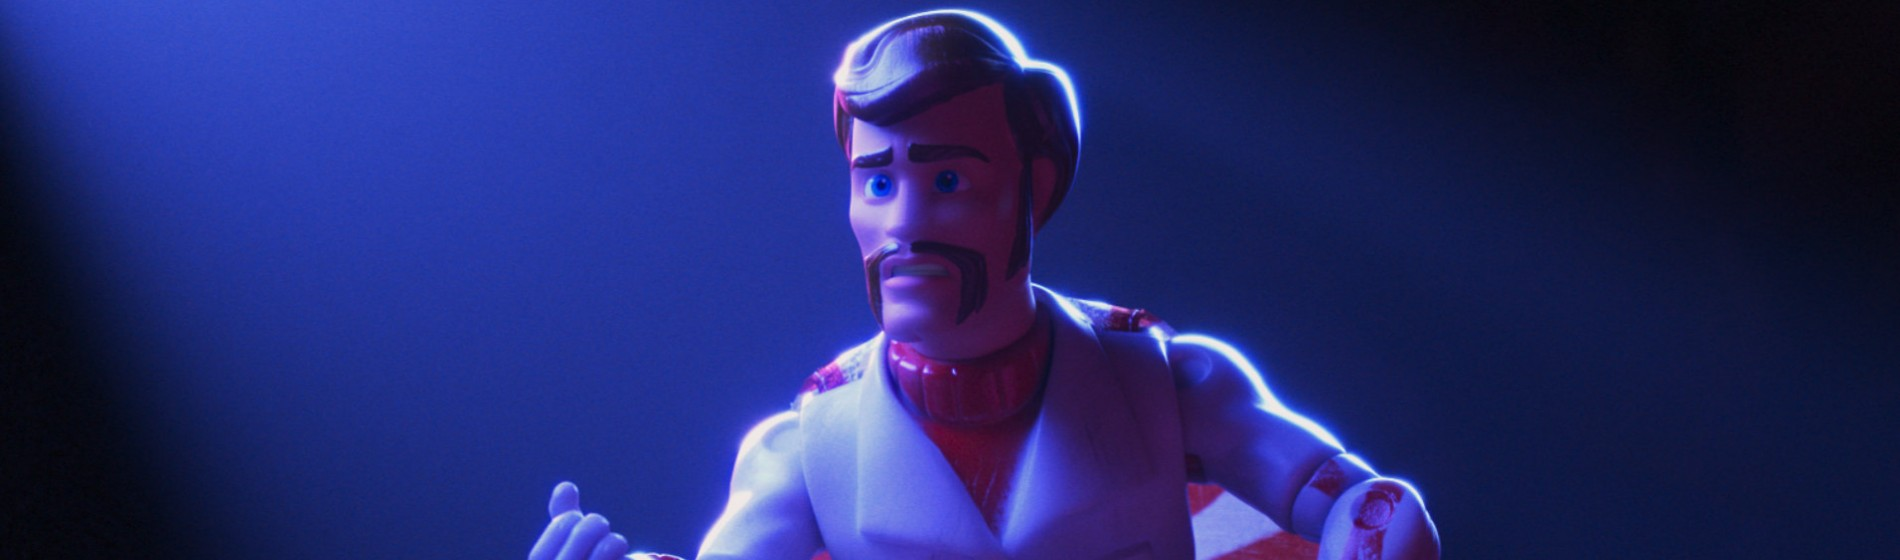 Toy Story 4 -- Duke Caboom